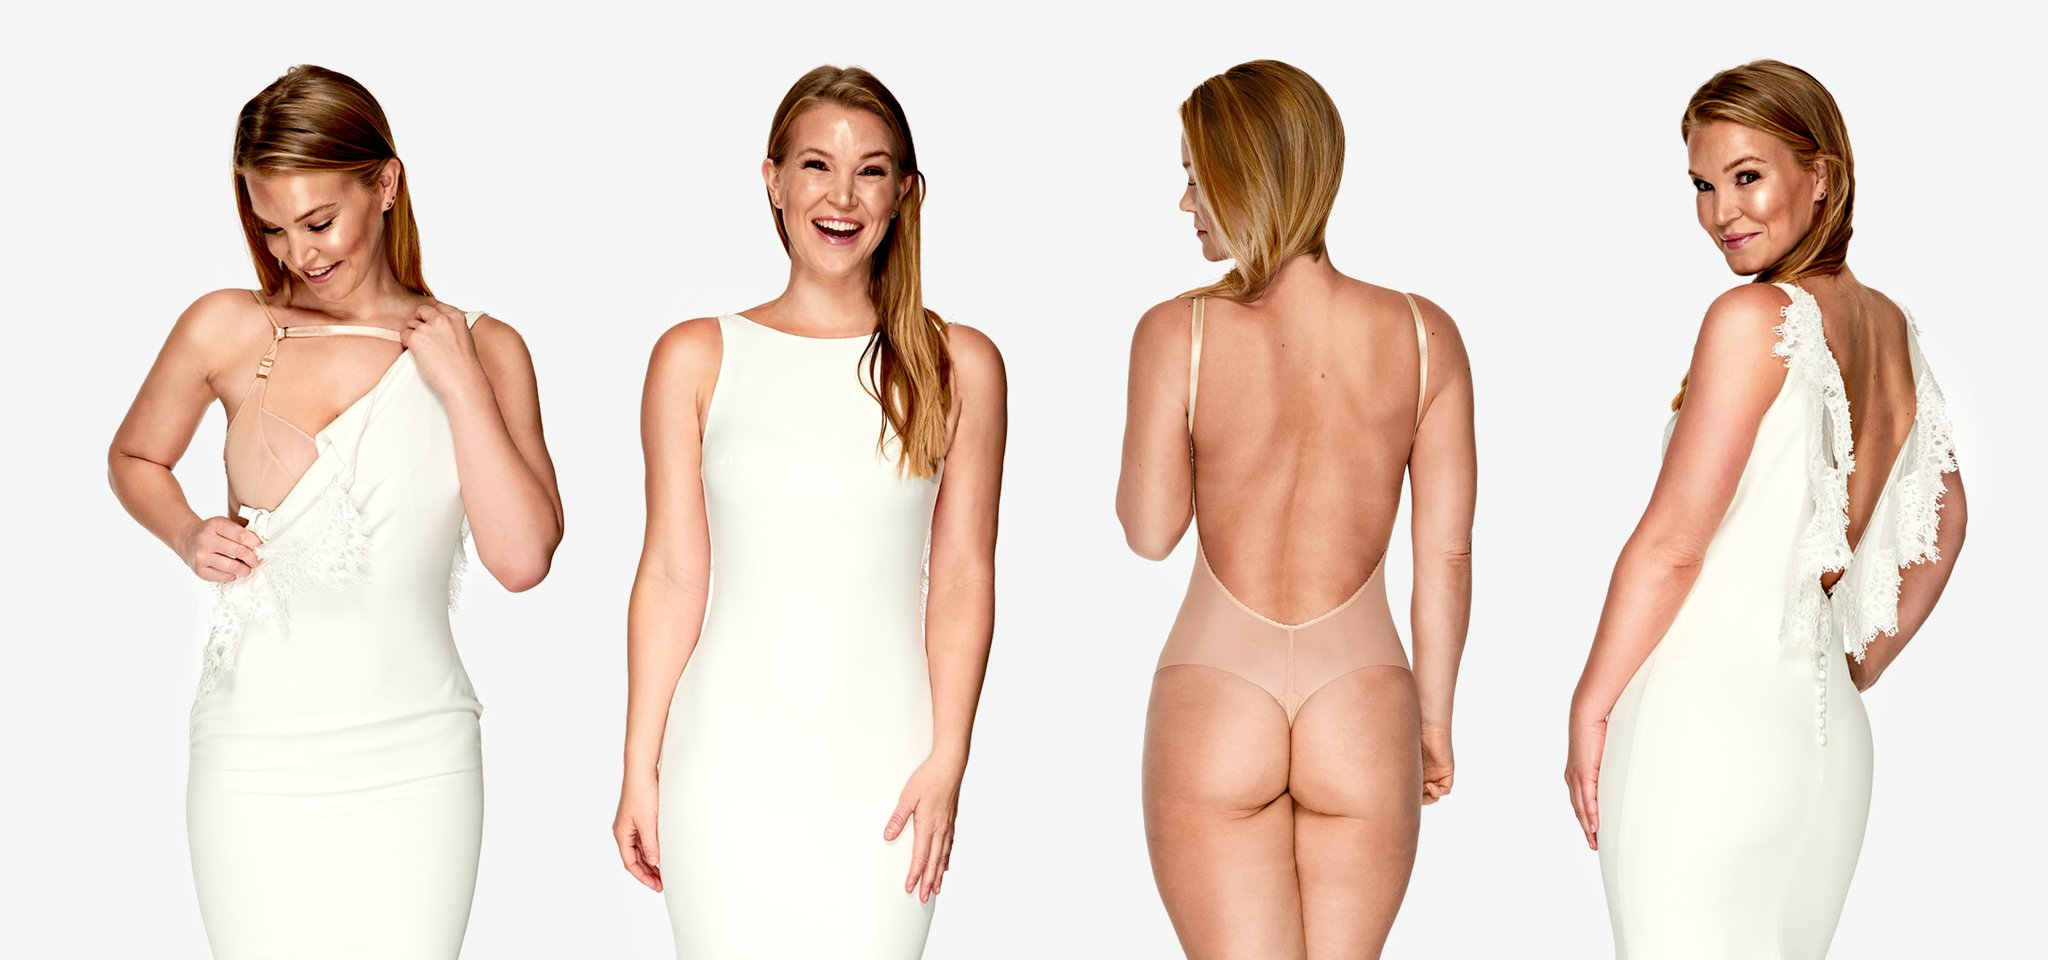 Backless bodysuit from EnderLegard.com